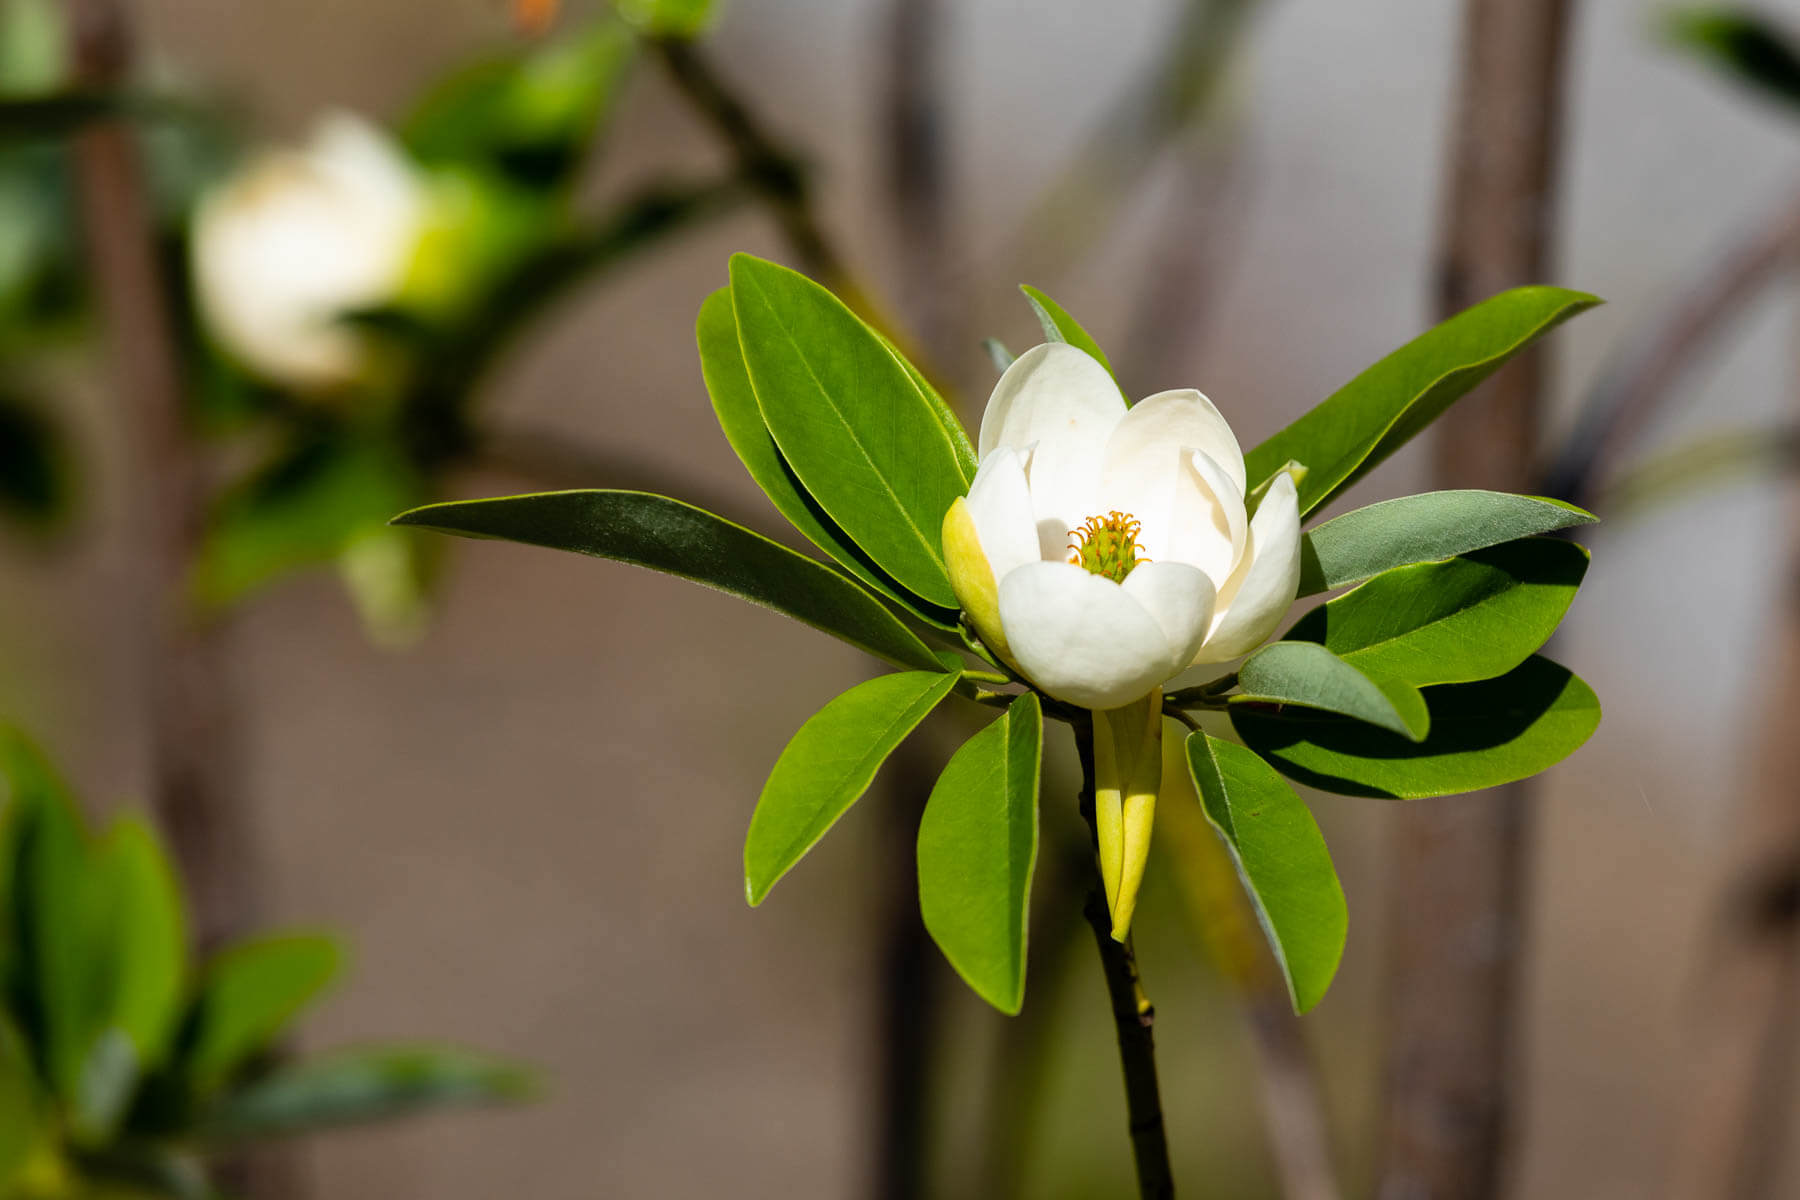 A single white flower sits in the middle of several glossy leaves